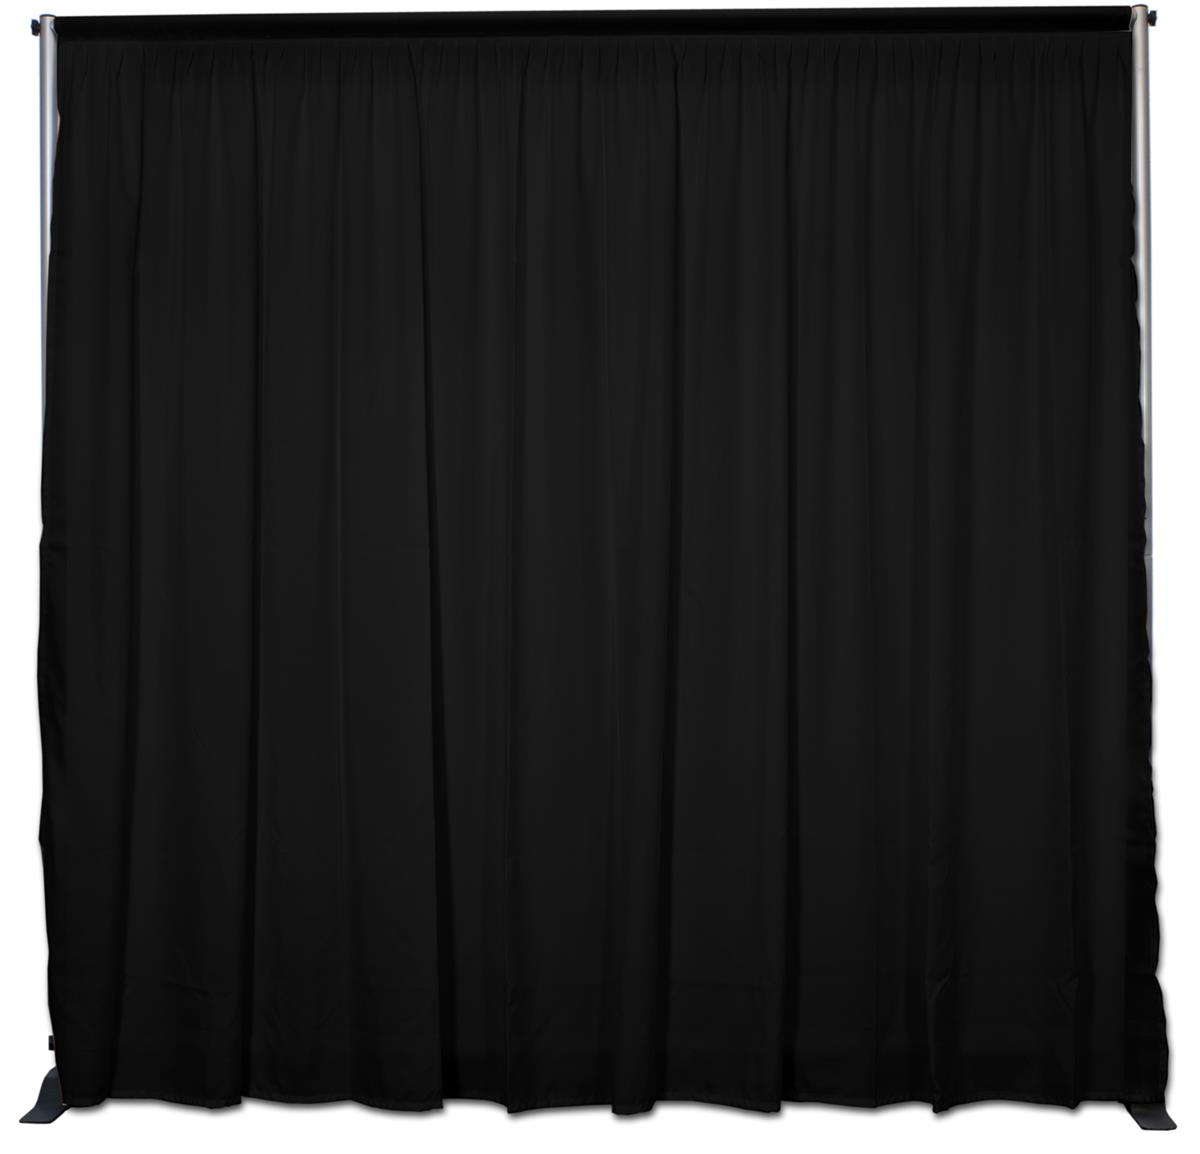 Displays2go Booth Backdrops Include Black Fabric Curtain from $278.8 ...